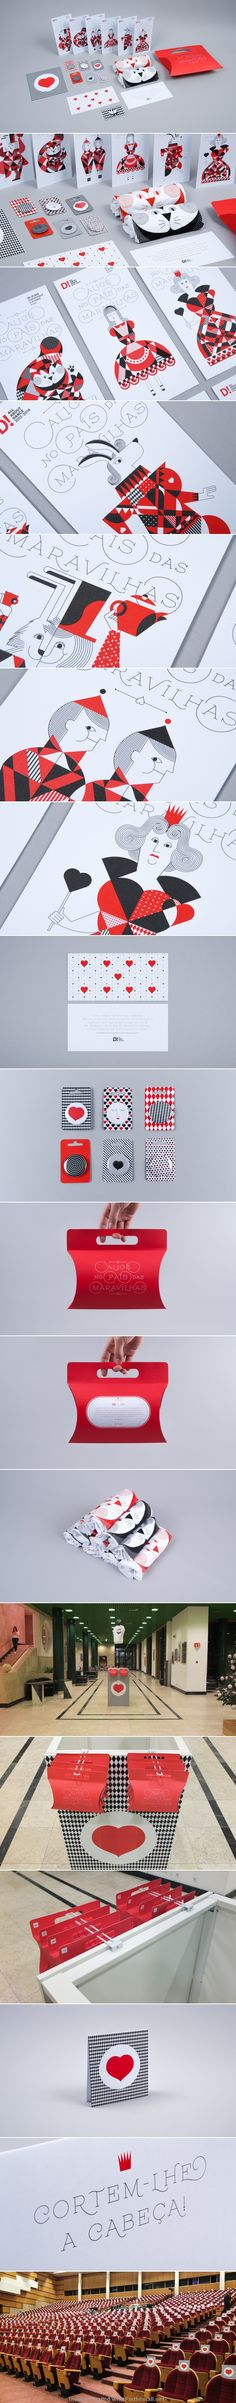 Alice In Wonderland All About Dance Identity Packaging Branding Pd Created Via Httpswwwbehancenetgal Corporate Design, Brand Identity Design, Graphic Design Branding, Typography Design, Logo Design, Lettering, Corporate Identity, Collateral Design, Visual Identity